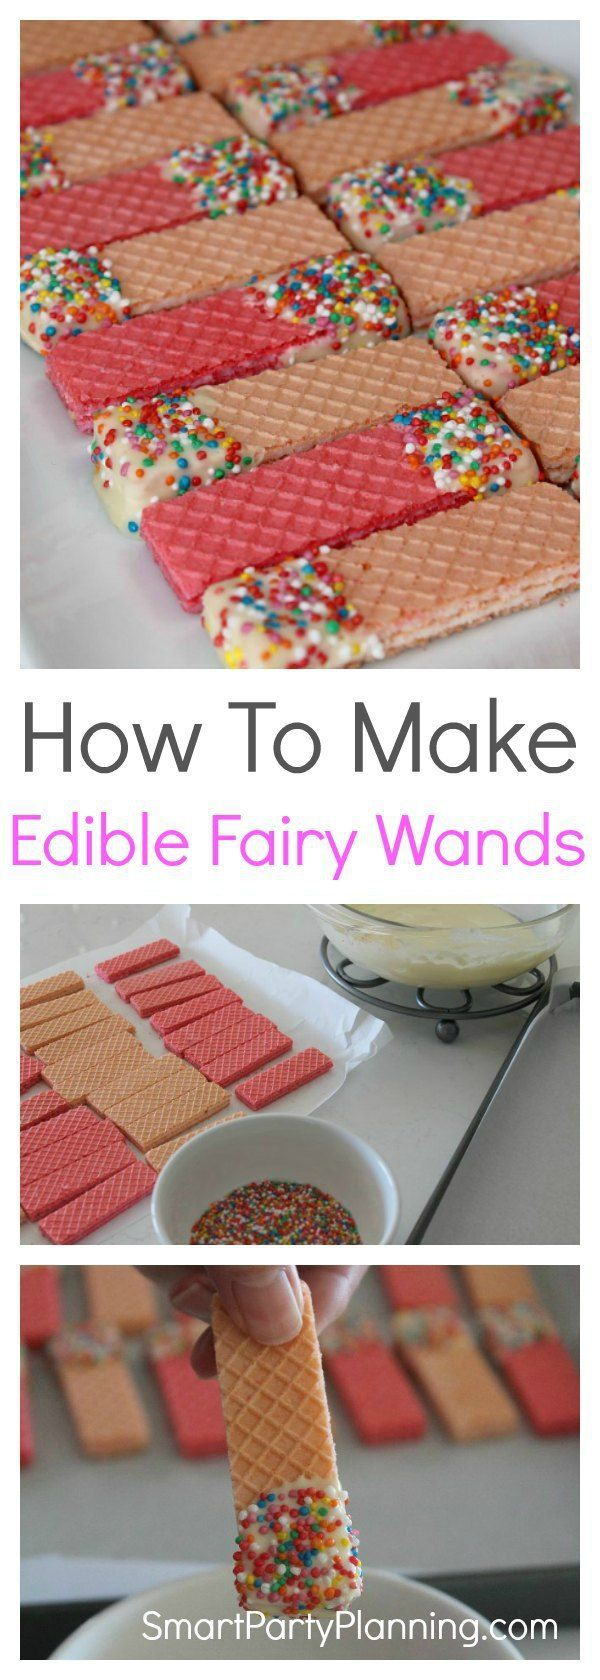 Learn how to make edible fairy wands the easy way. Whether you are having a fairy or a princess party, these wands are going to be the perfect party food. The kids love them, they are quick and easy to make and they look amazing.